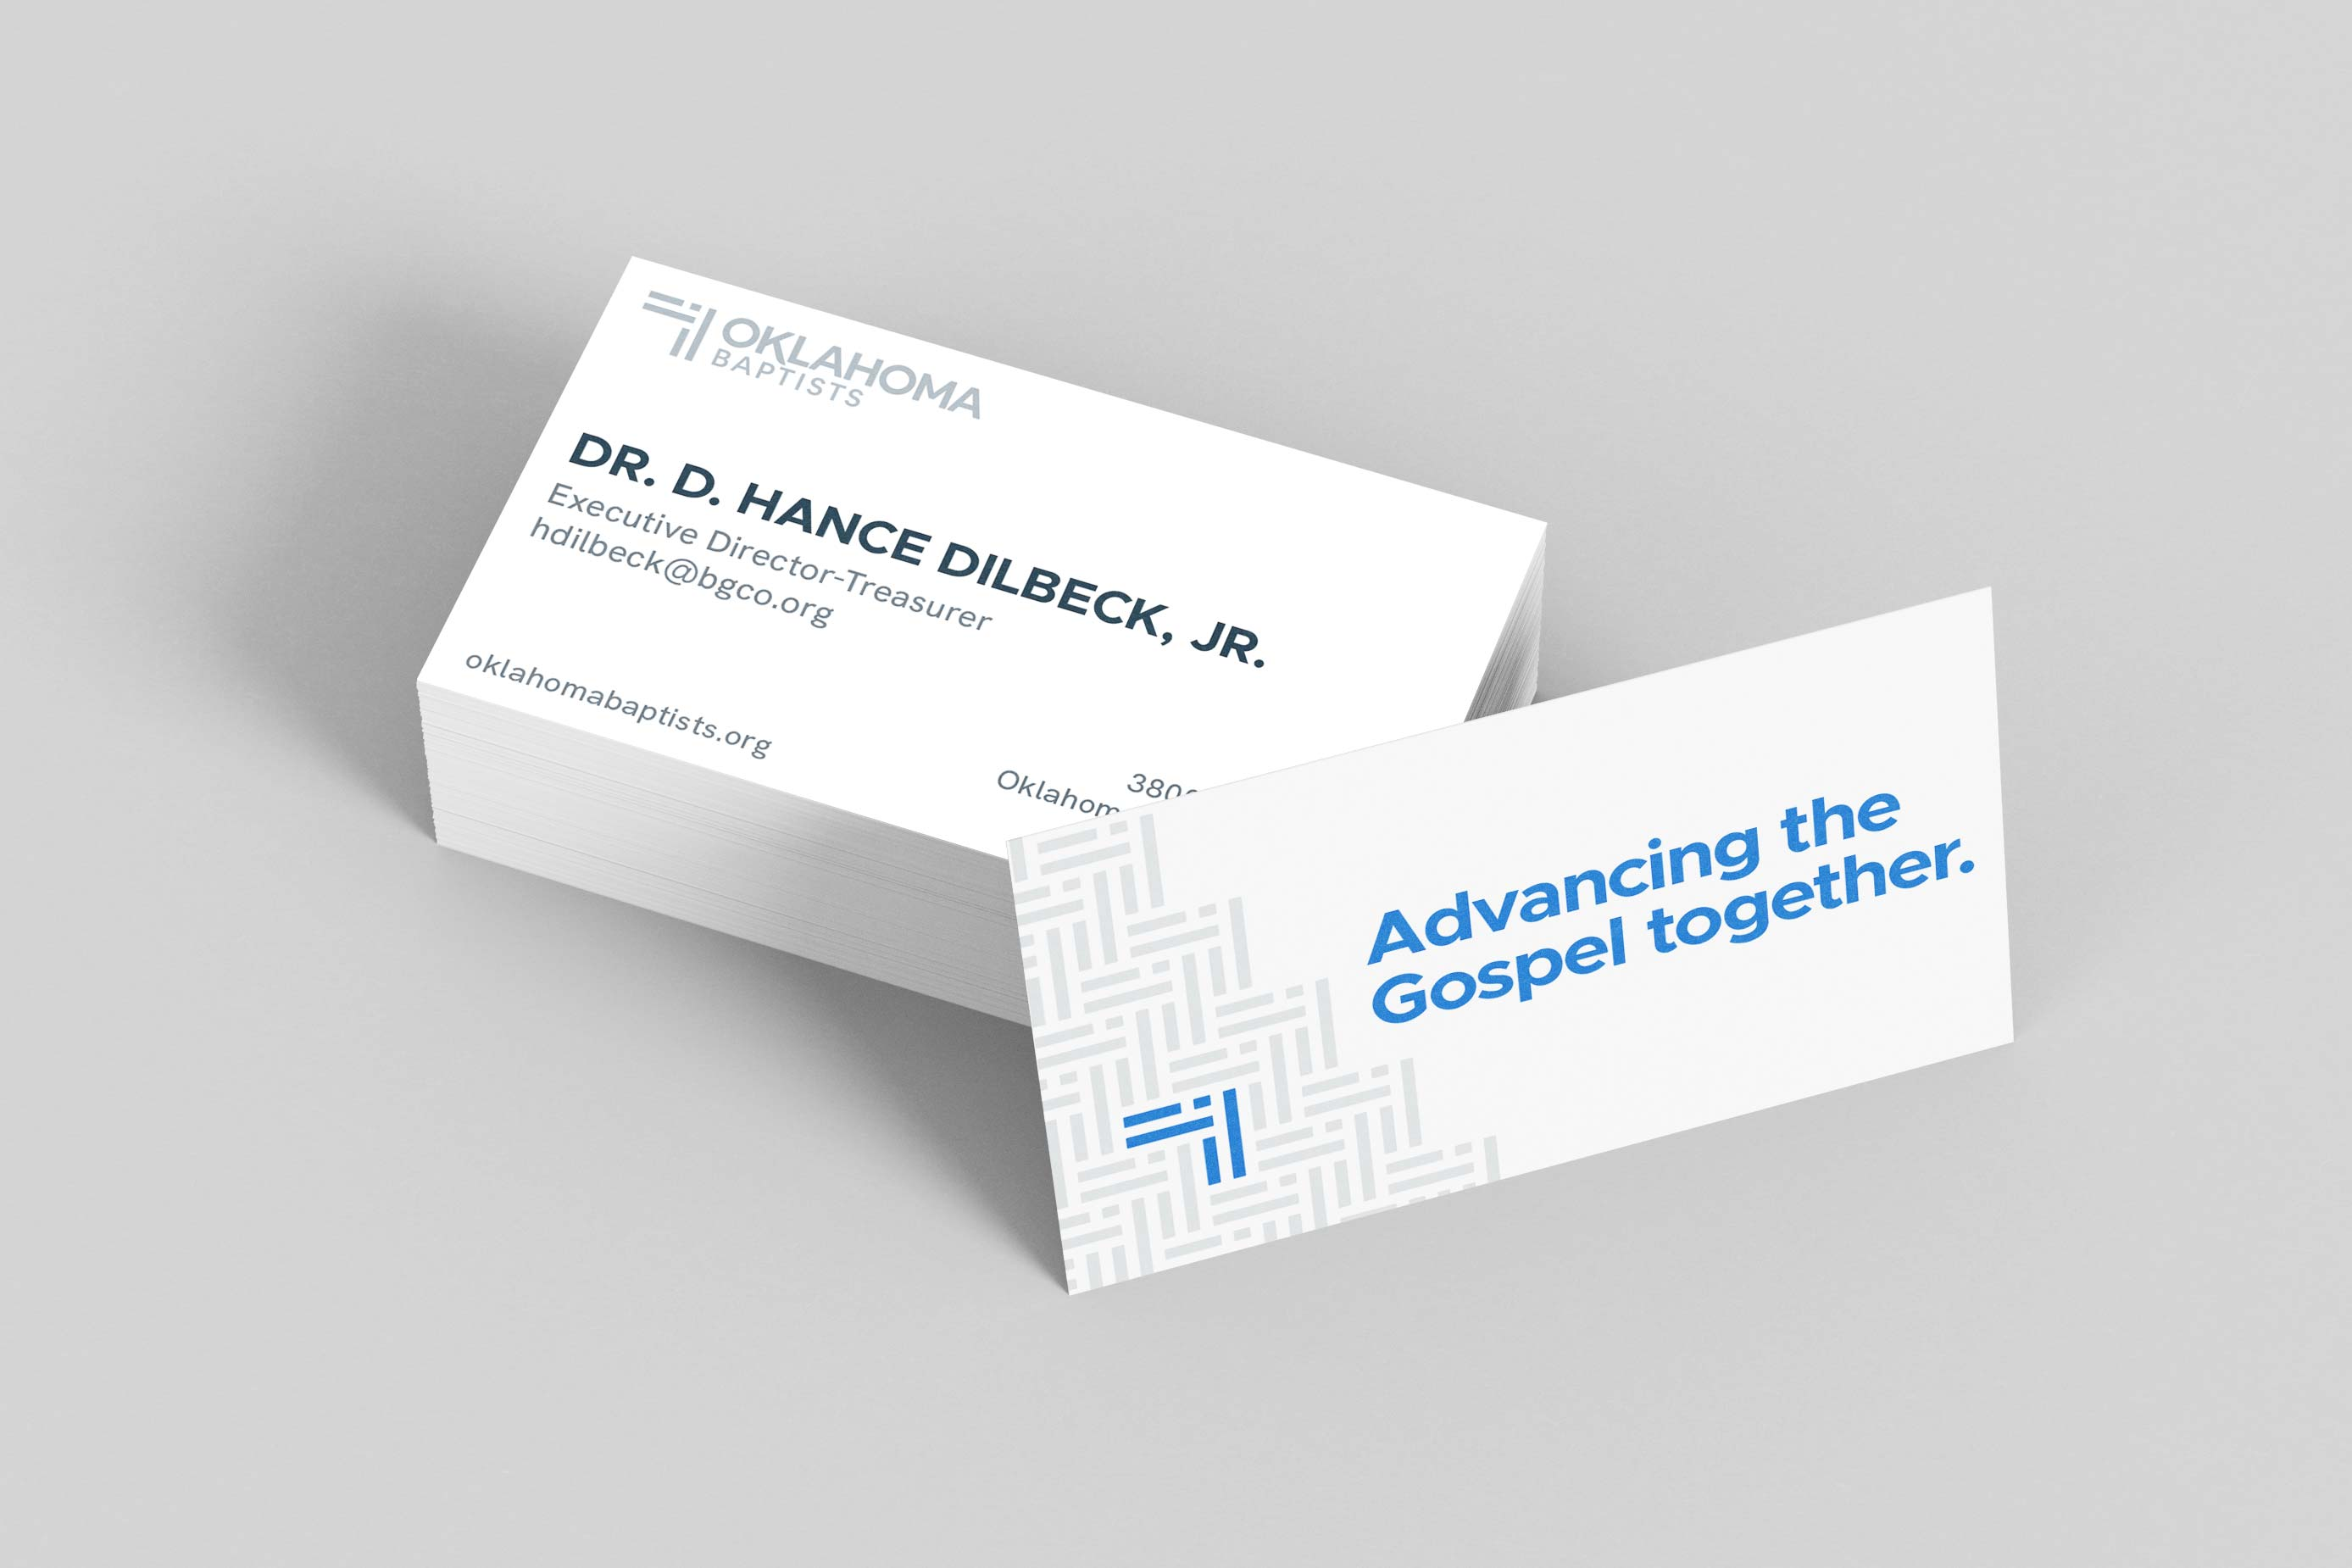 The business cards shared by Oklahoma Baptist Convention employees